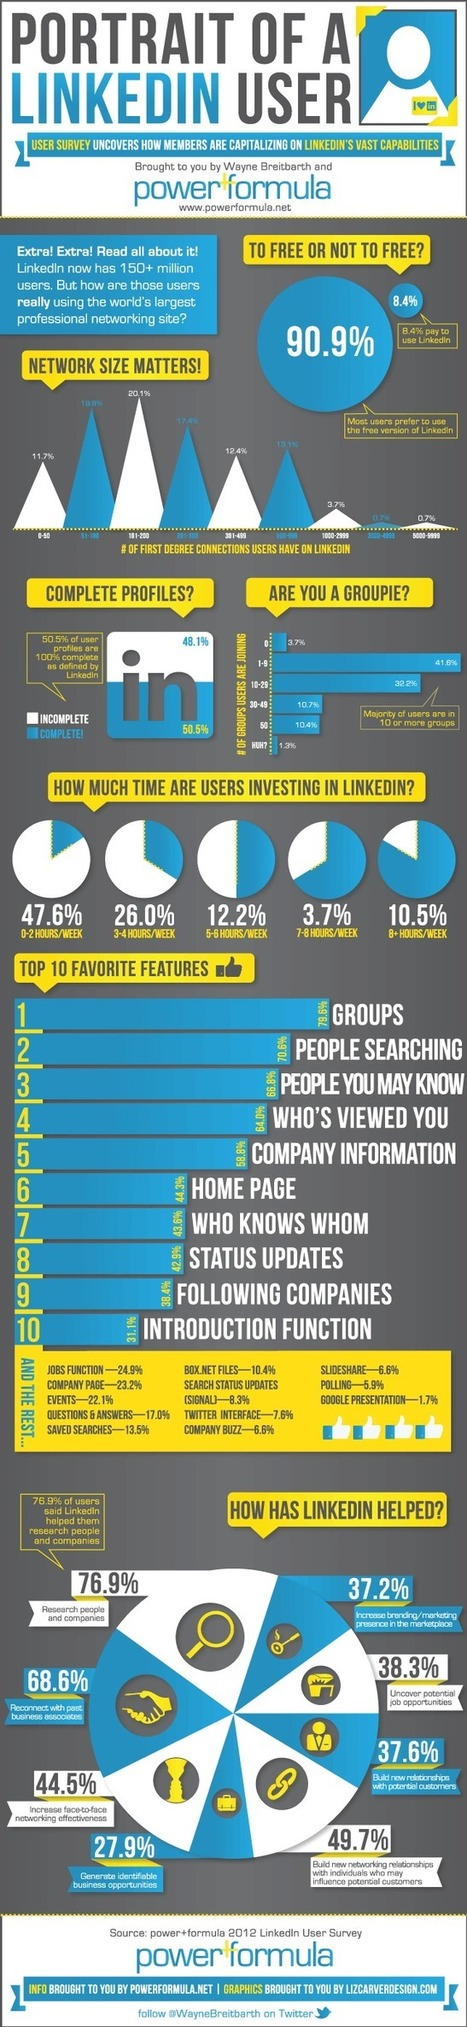 Portrait of a LinkedIn user [infographic] | InfoGraphic Plaza | Scoop.it